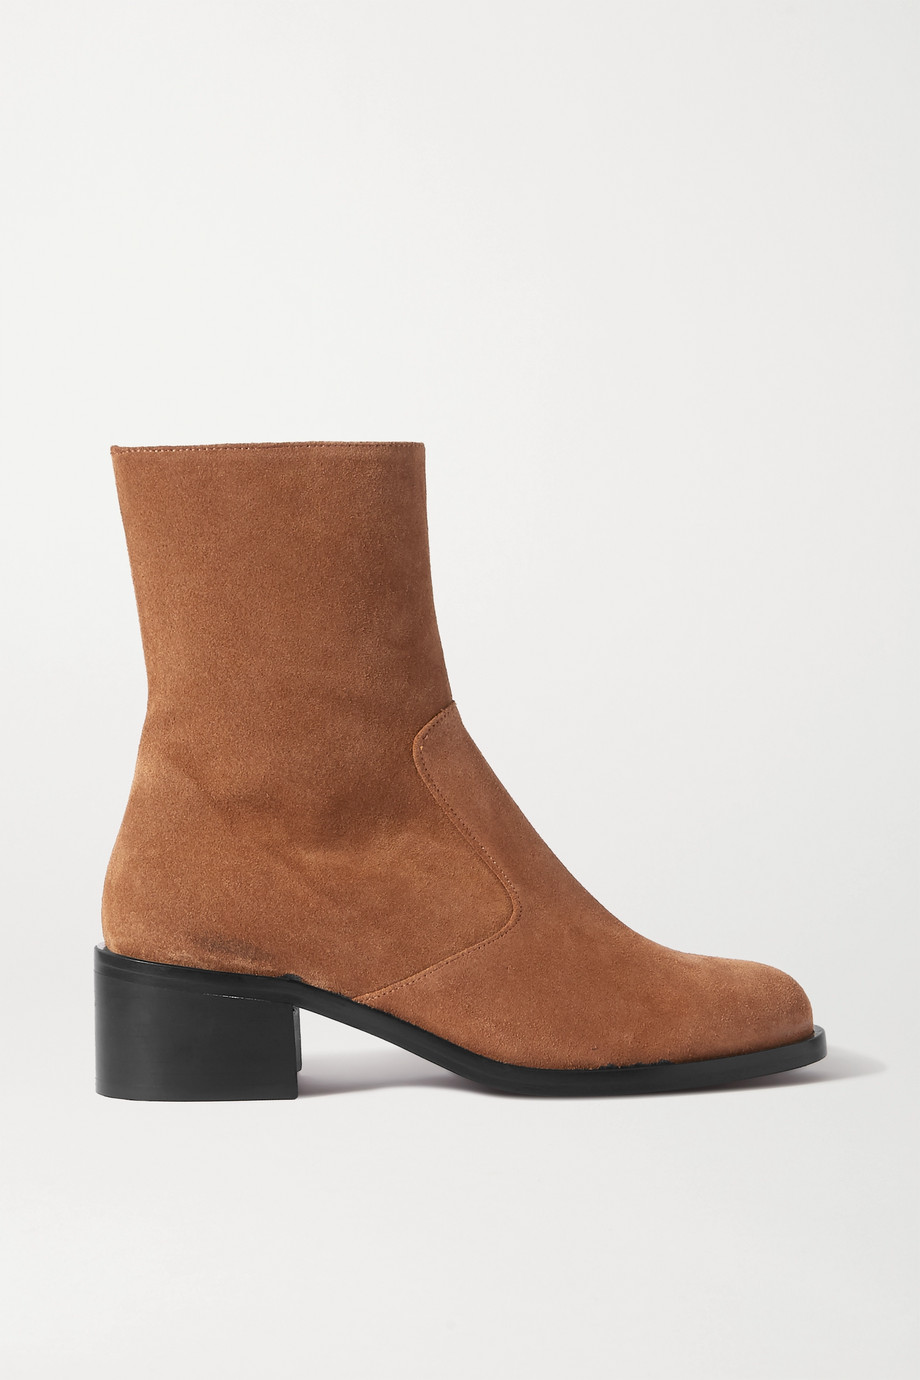 BY FAR Lara suede ankle boots